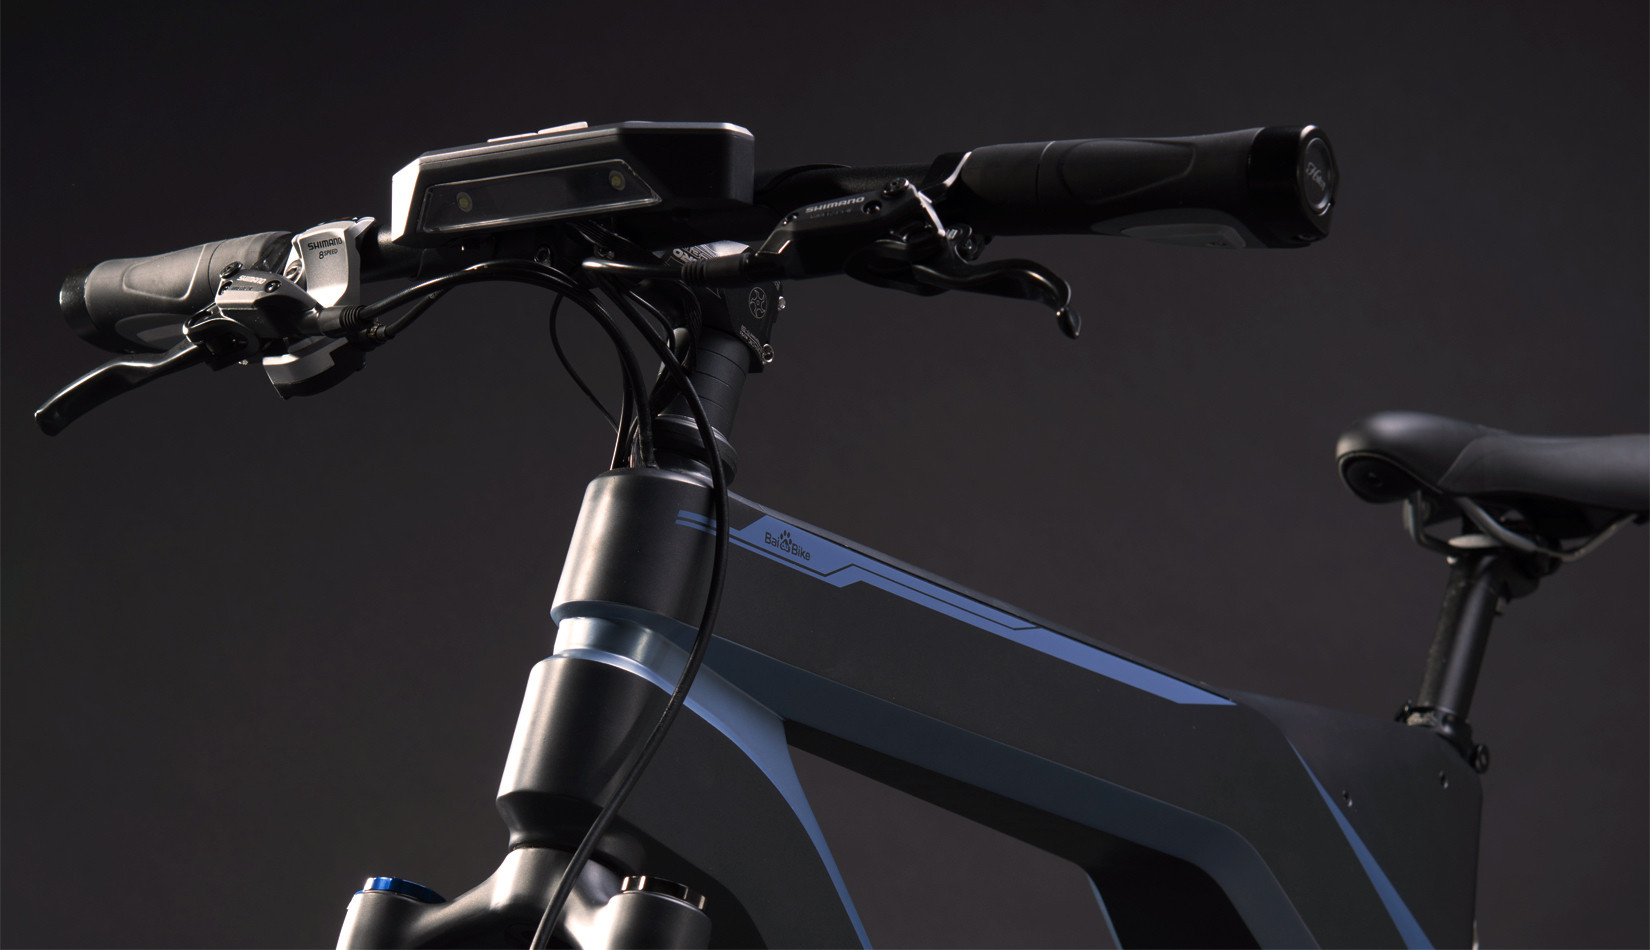 Smart Bike Project de Baidu, le vélo intelligent